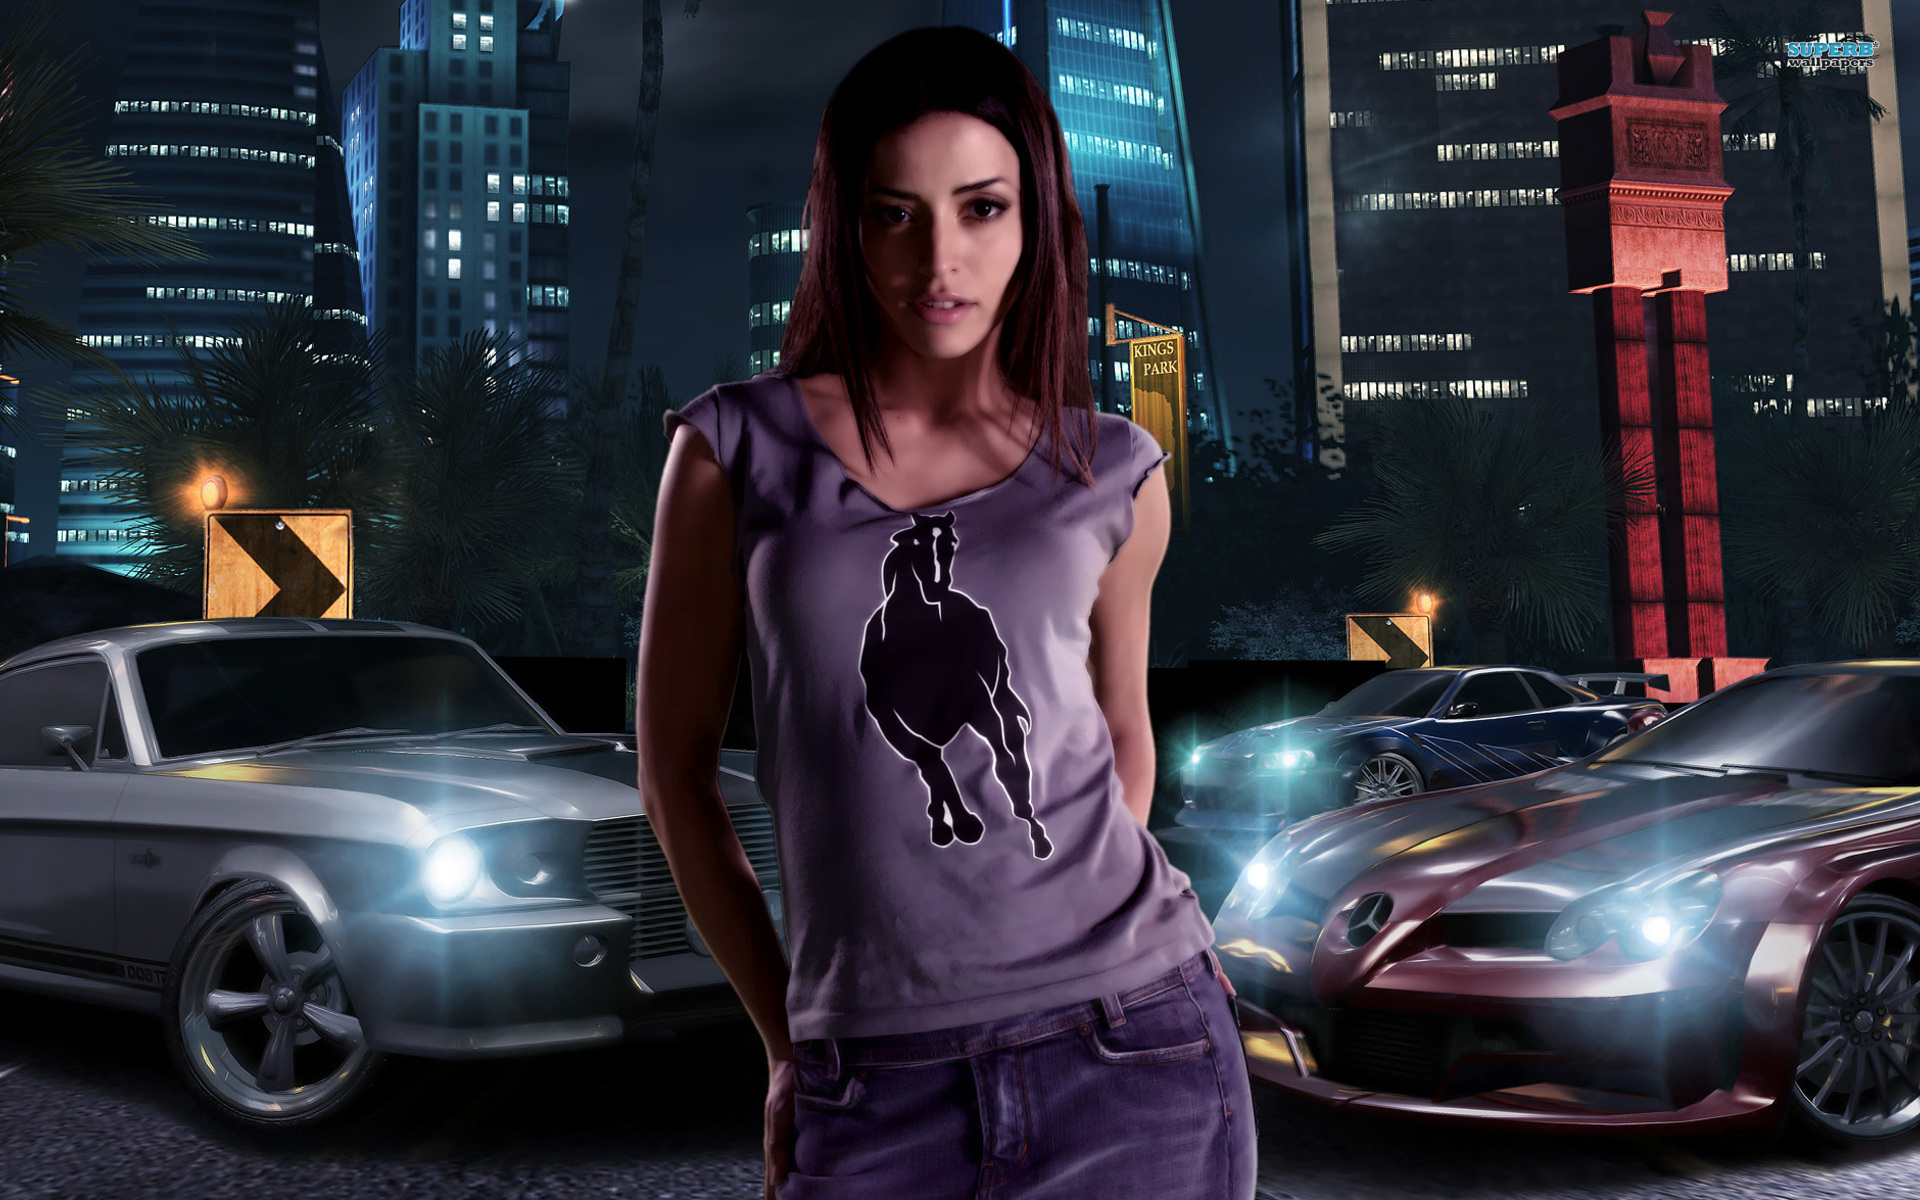 Carbon Need For Speed Game 706409 Wallpaper wallpaper